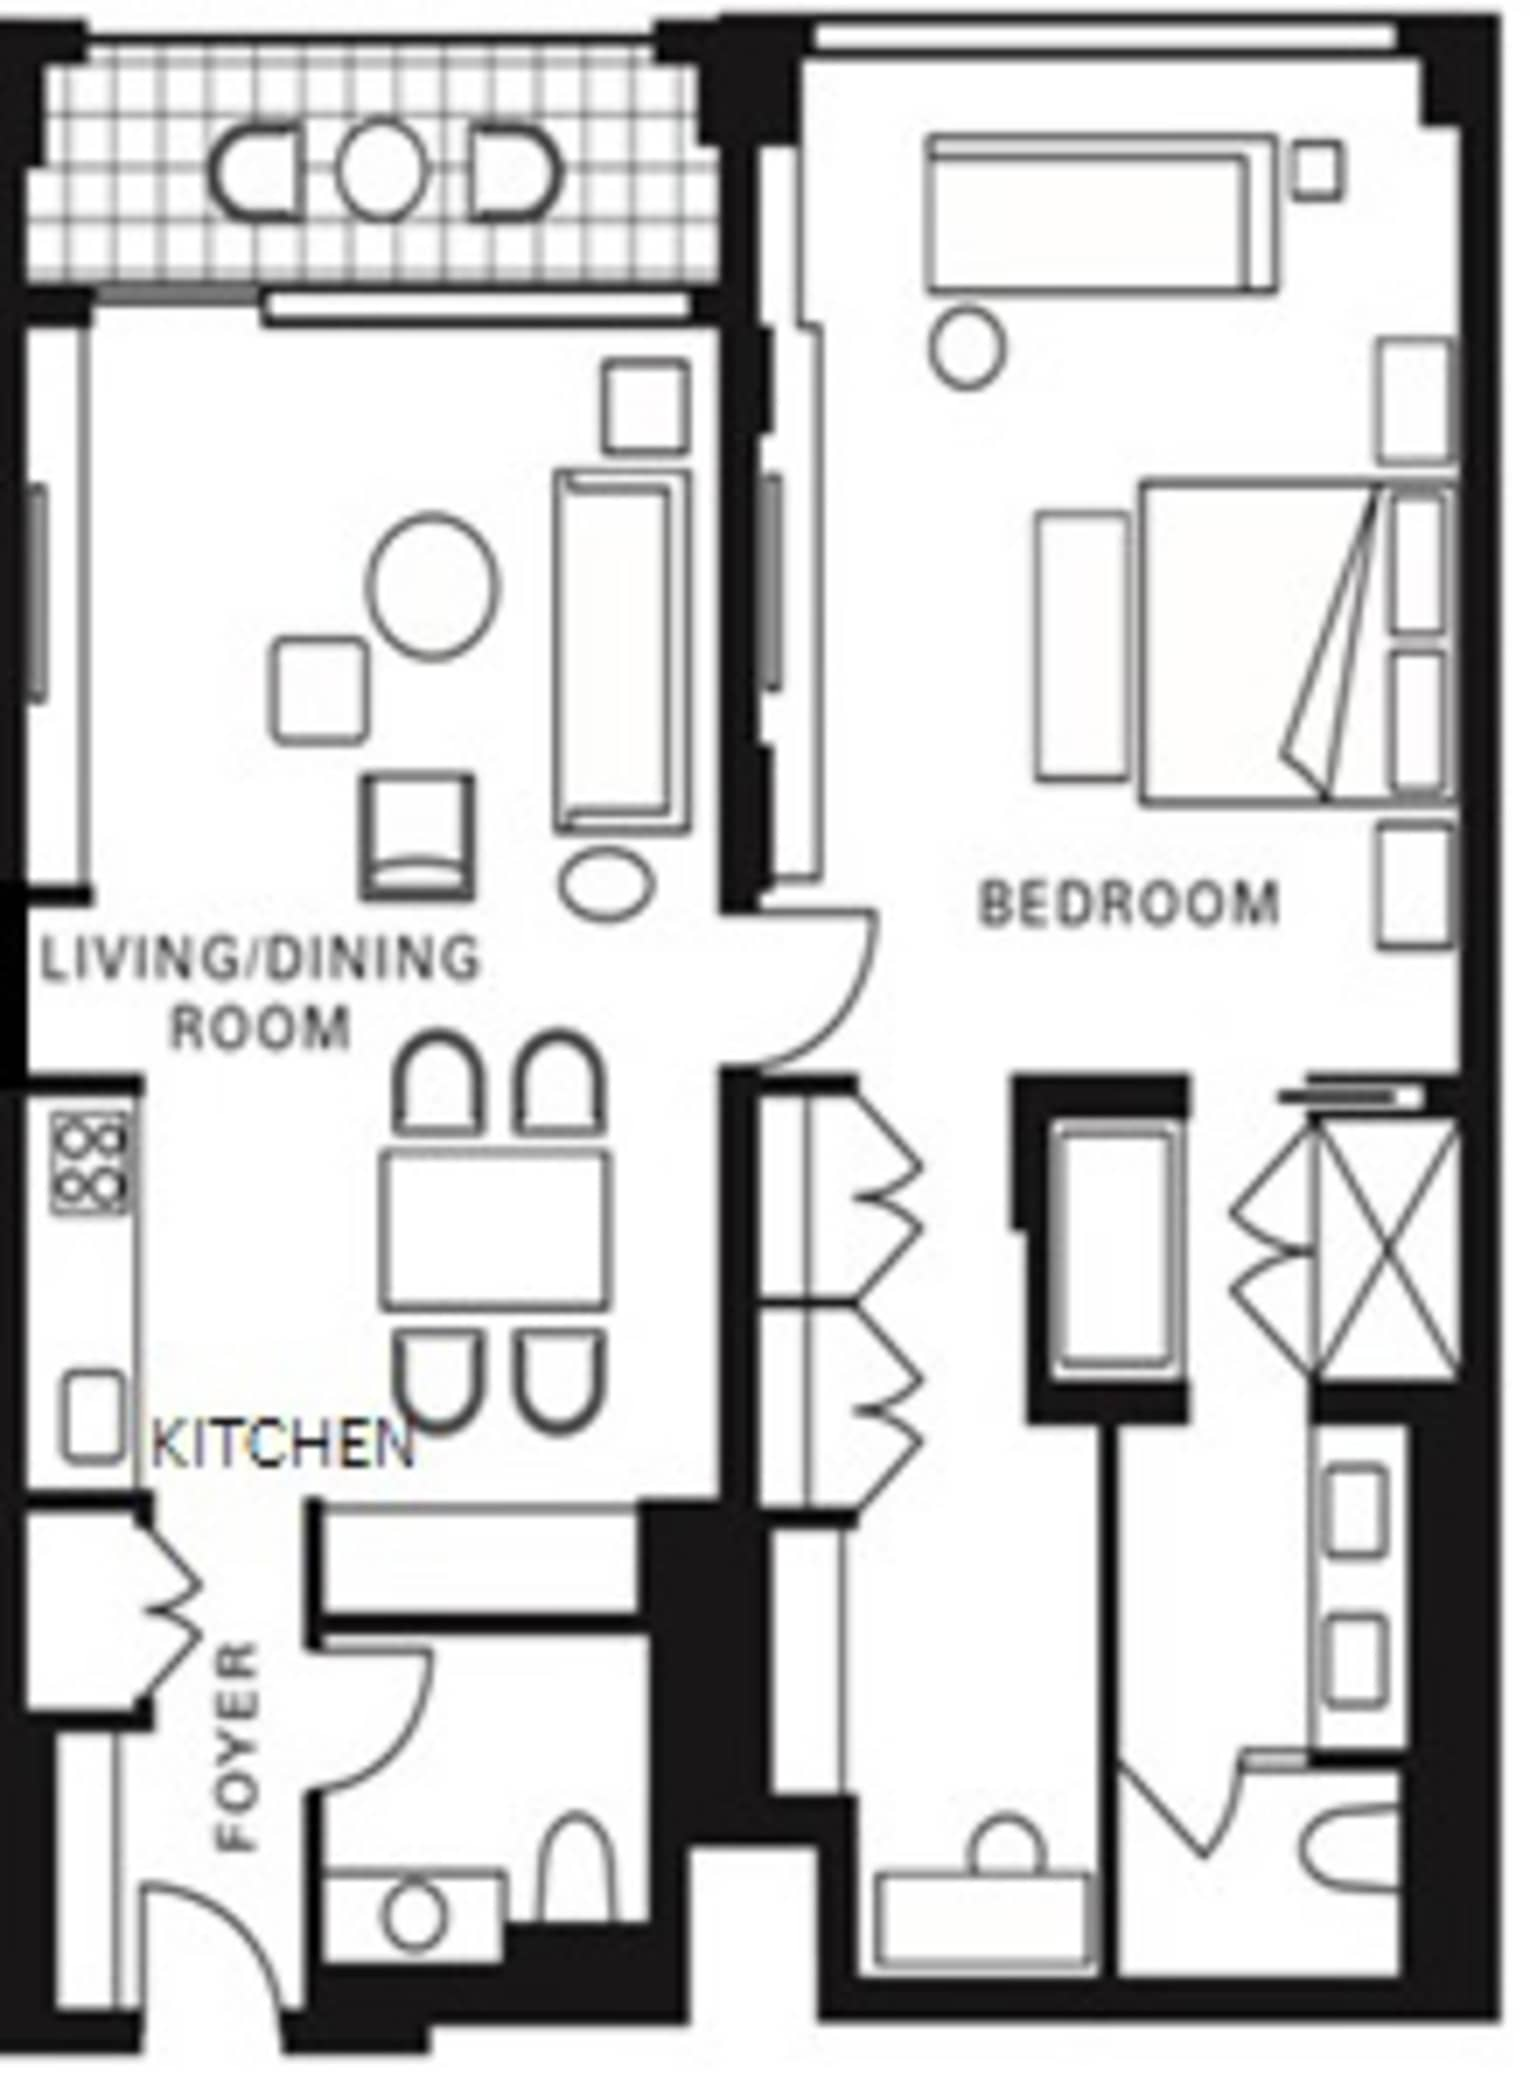 Hotel Room Plan: Luxury One-Bedroom Residence Suite With Kitchen